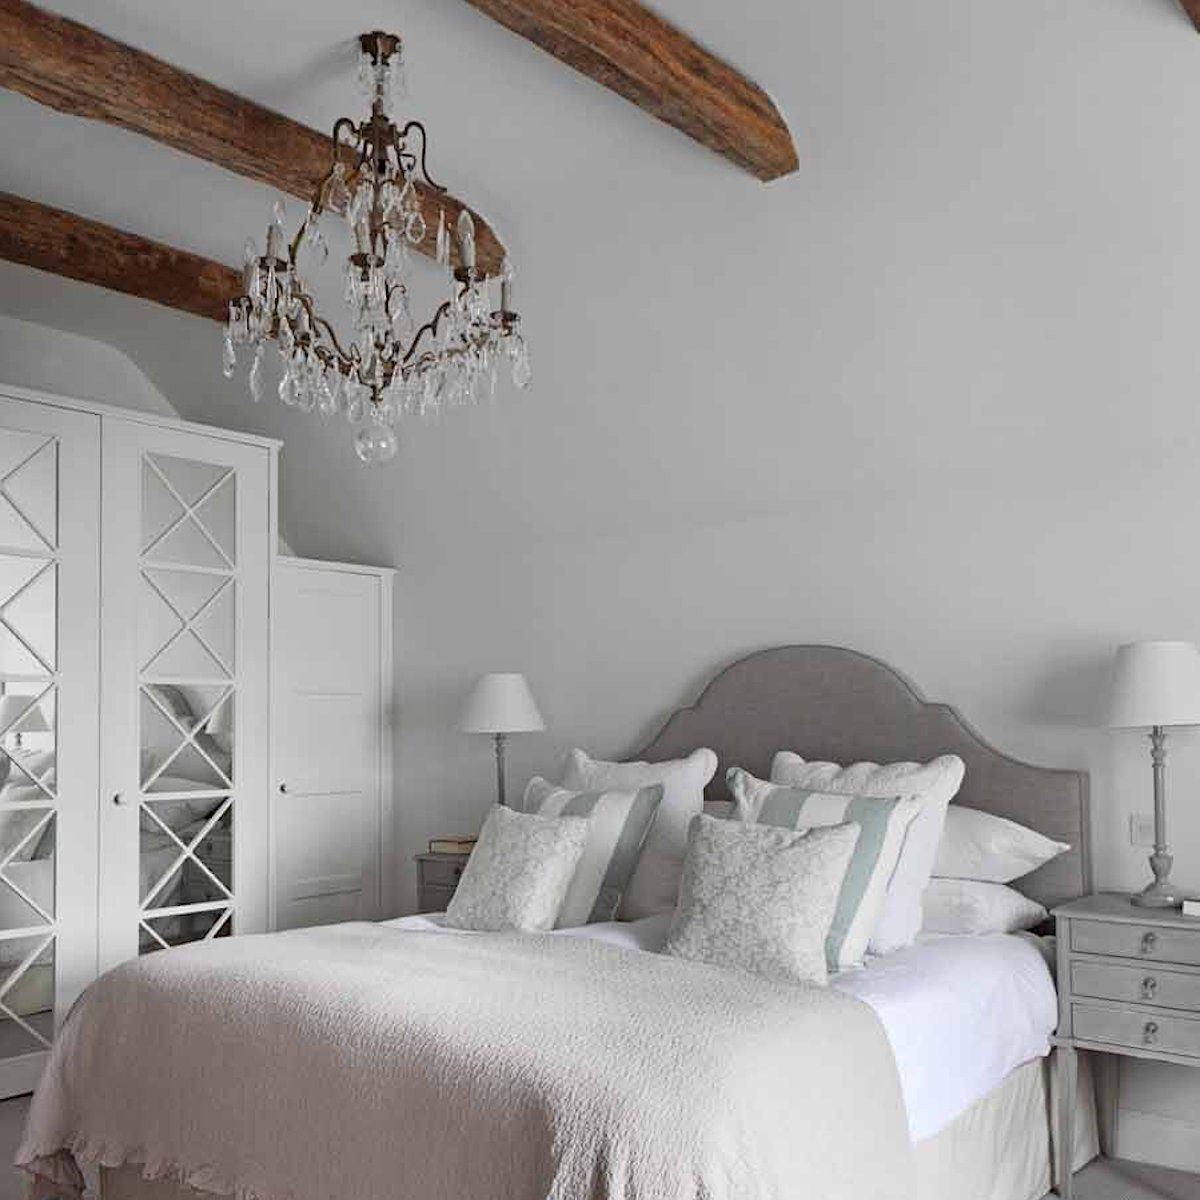 bedroom with white walls, neutral colors with light touches of blue, exposed wooden beams on ceiling, ornate chandelier, tuscan style